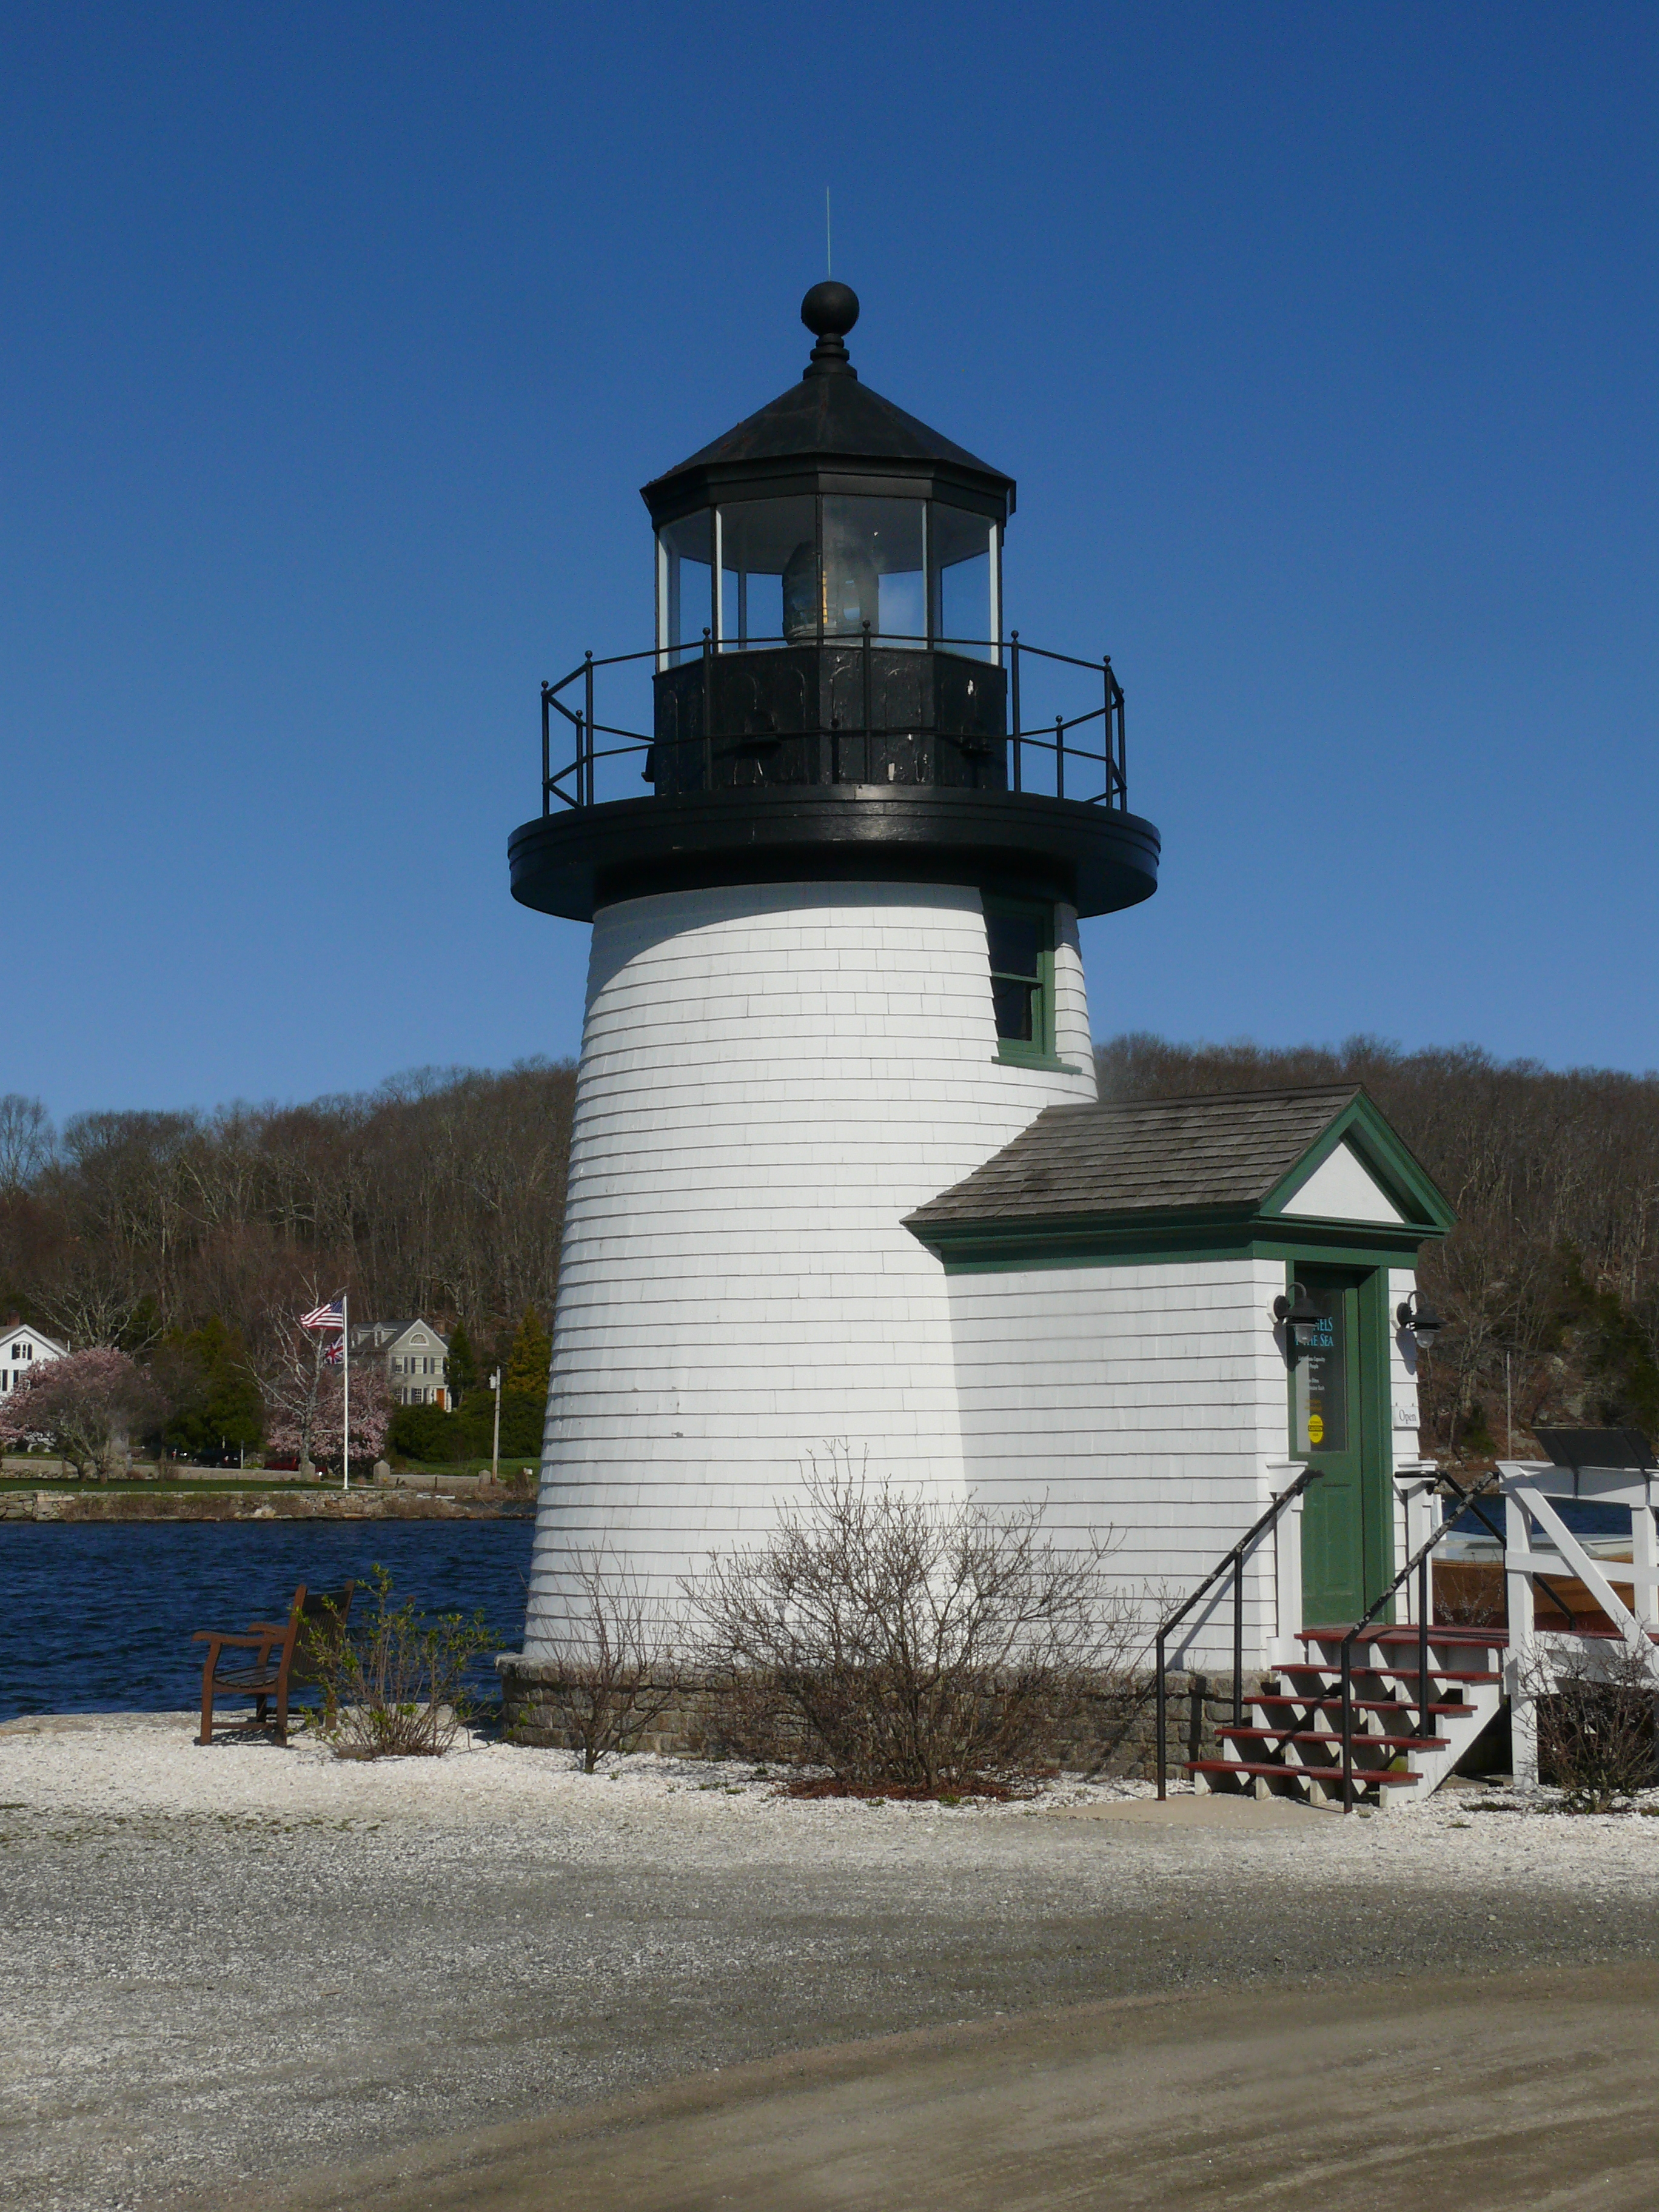 High Quality File:Mystic Seaport Lighthouse.JPG Amazing Pictures